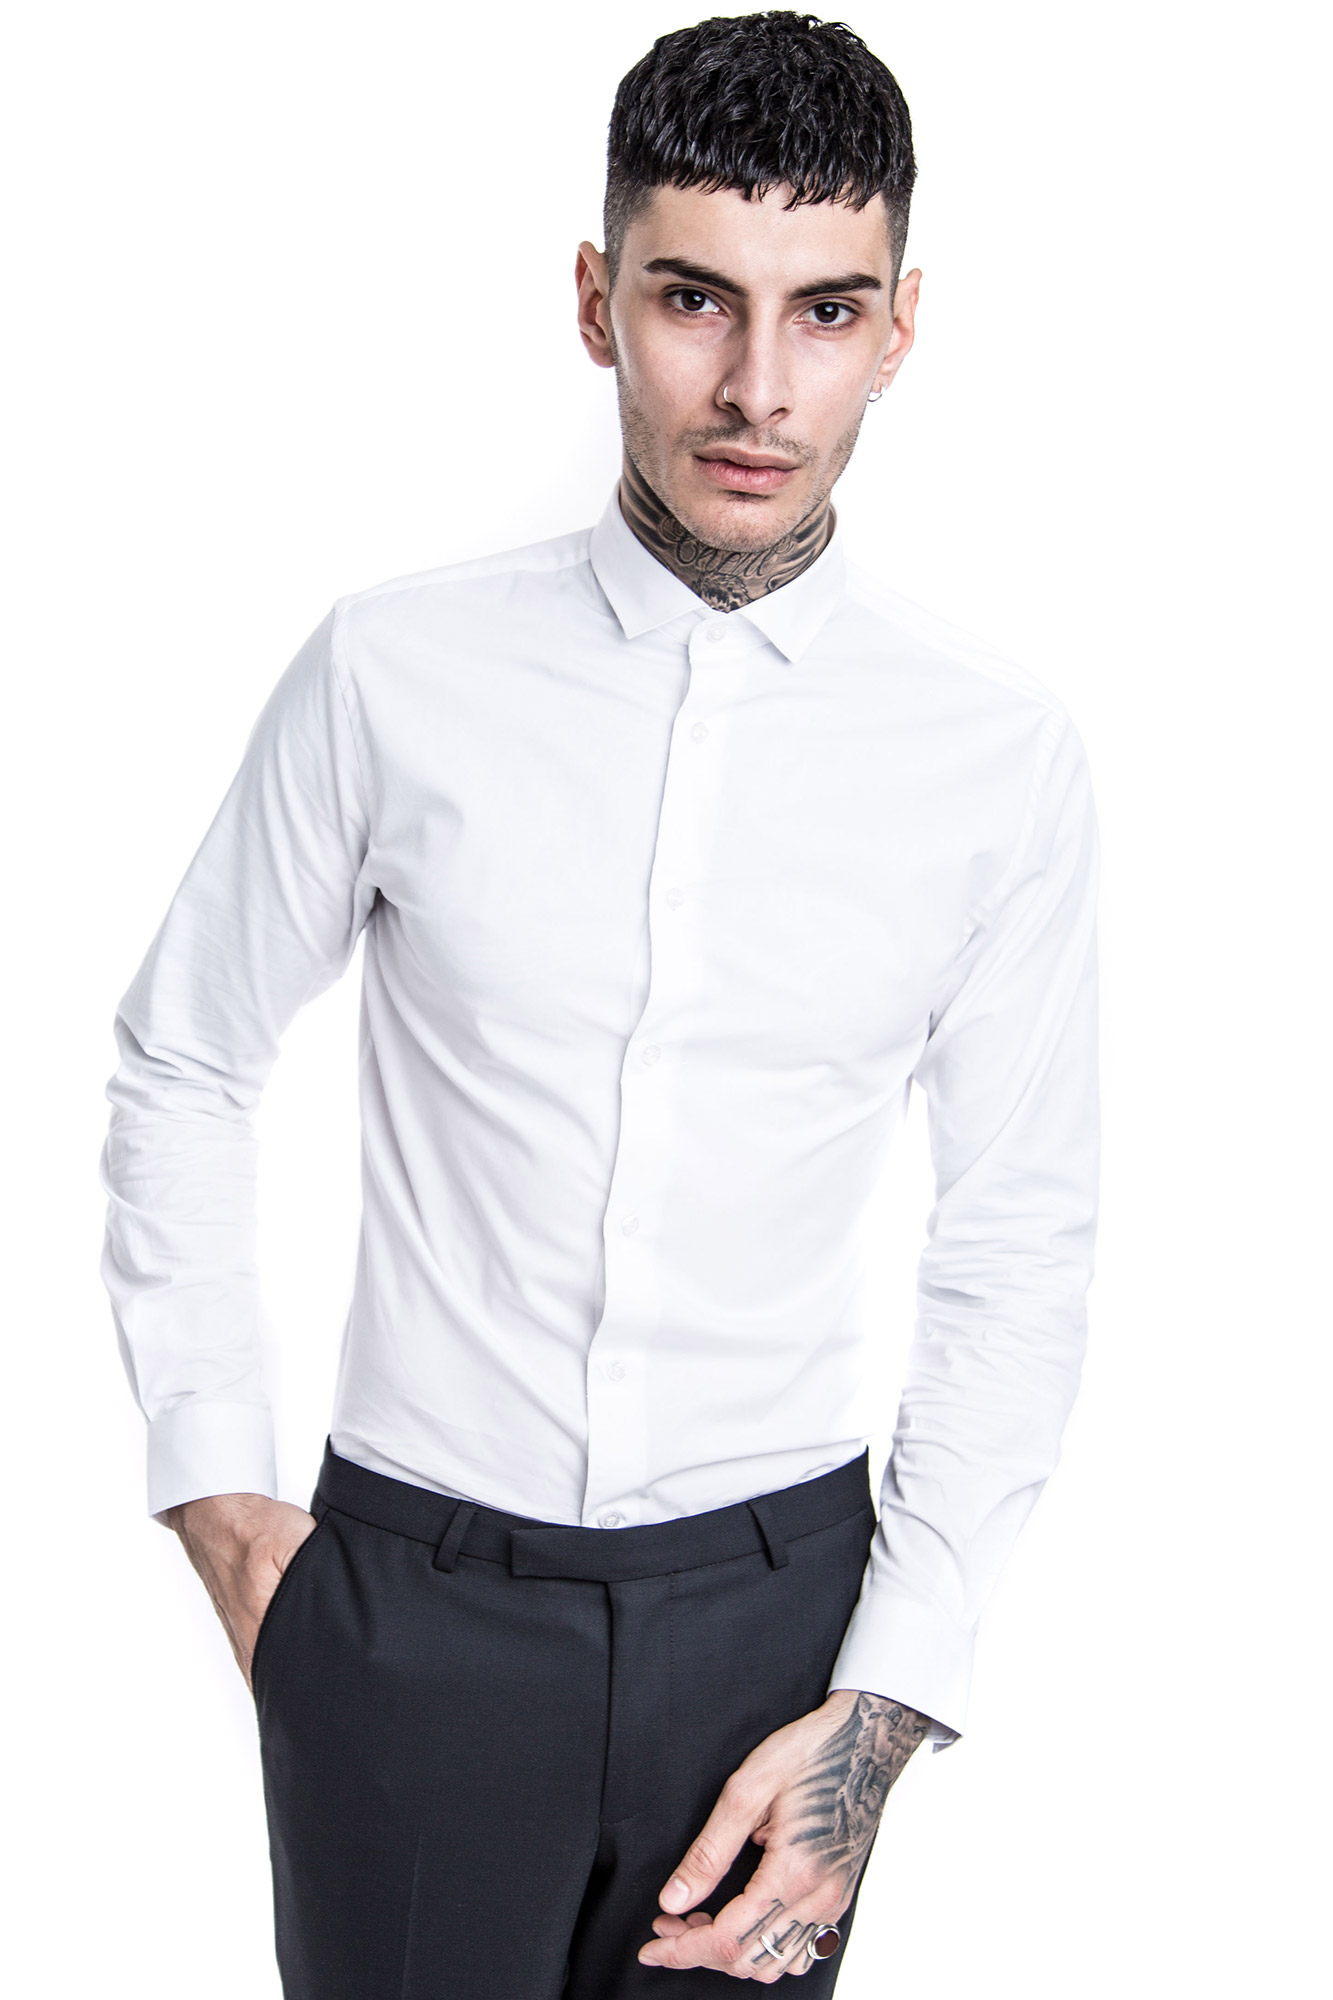 Cutaway Collar | Modena Dress Shirts | Cut Away Collar